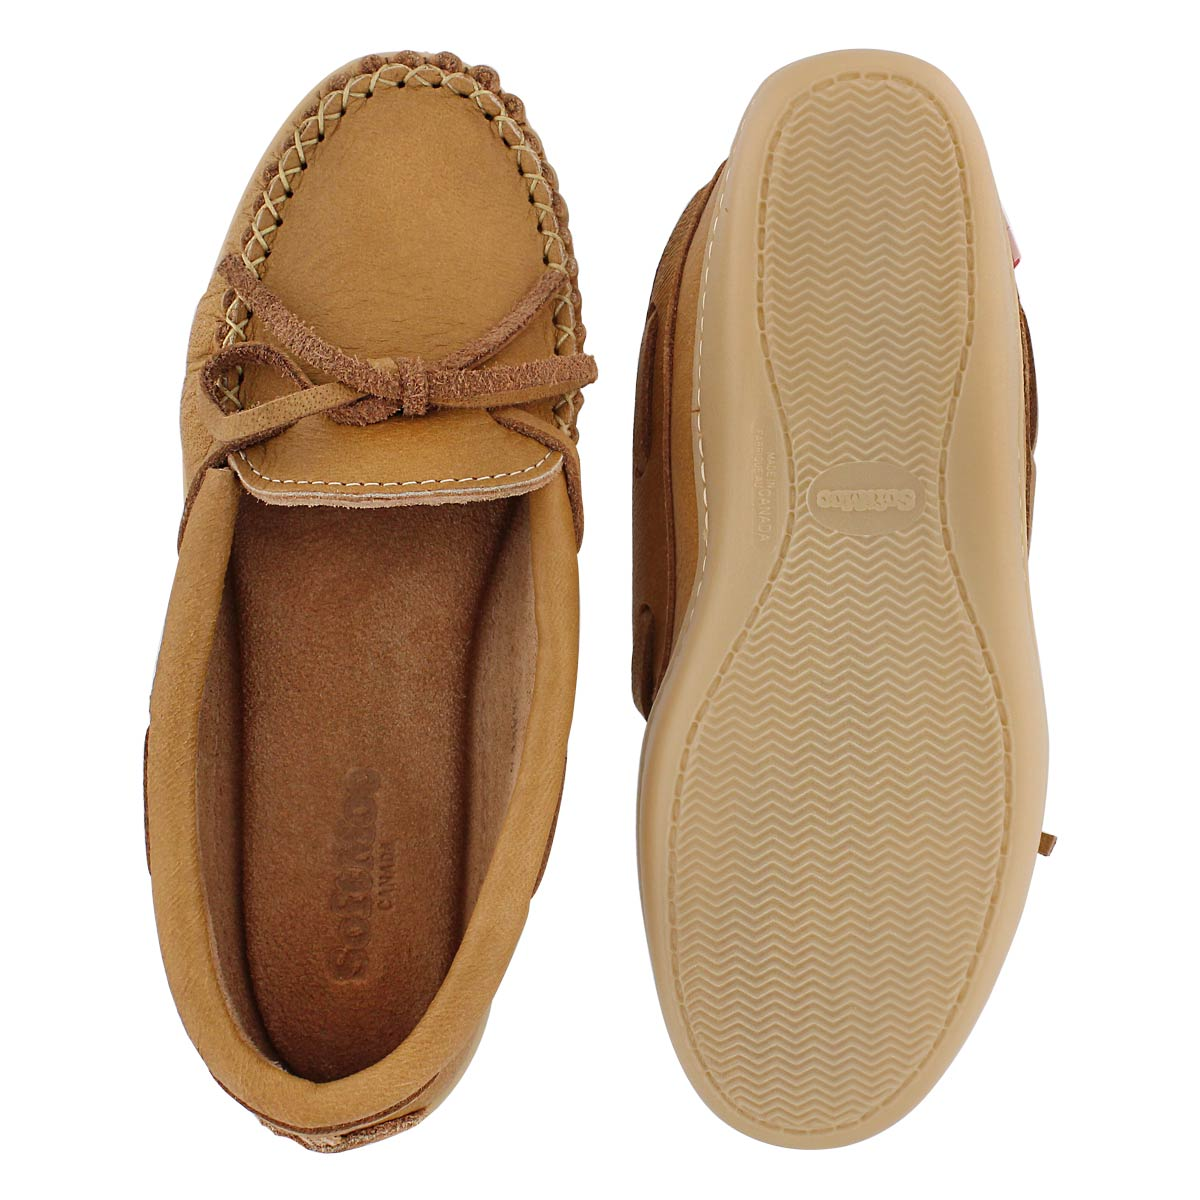 Lds natural moose TPR sole moccasin